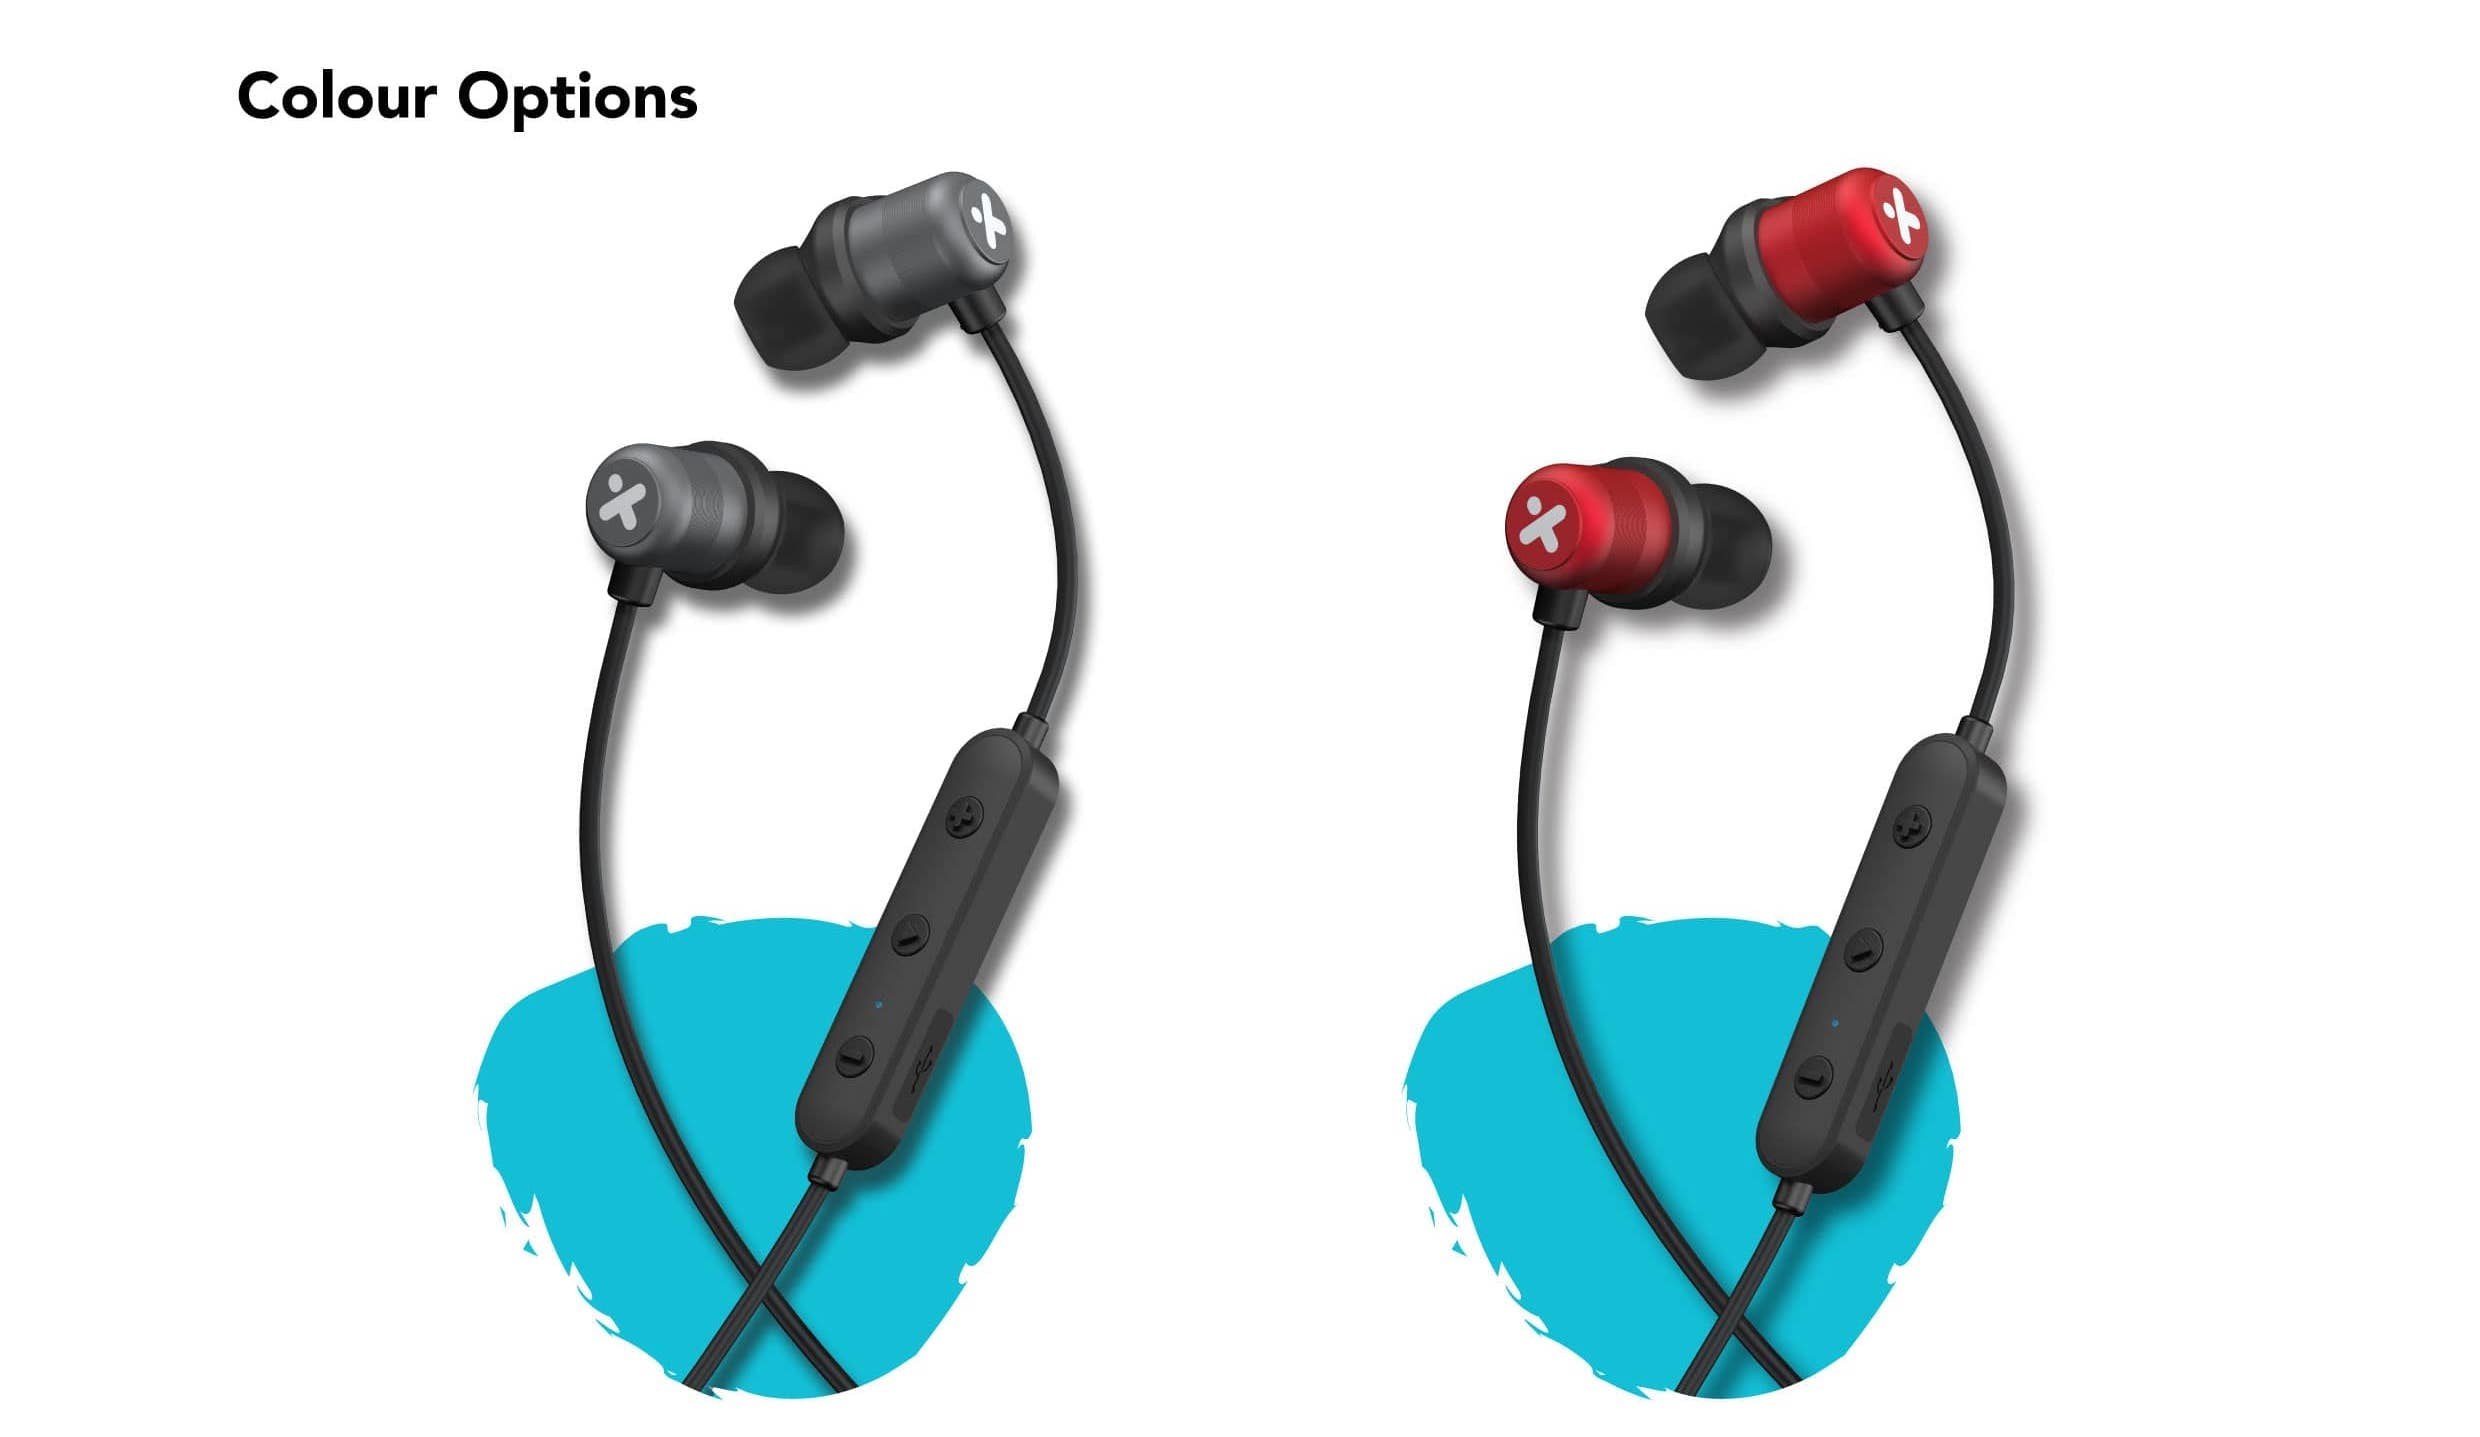 X-mini-Ray_-Wireless-Xoundbuds-Bluetooth-Crisp-Clear-Sound-Colour-Options